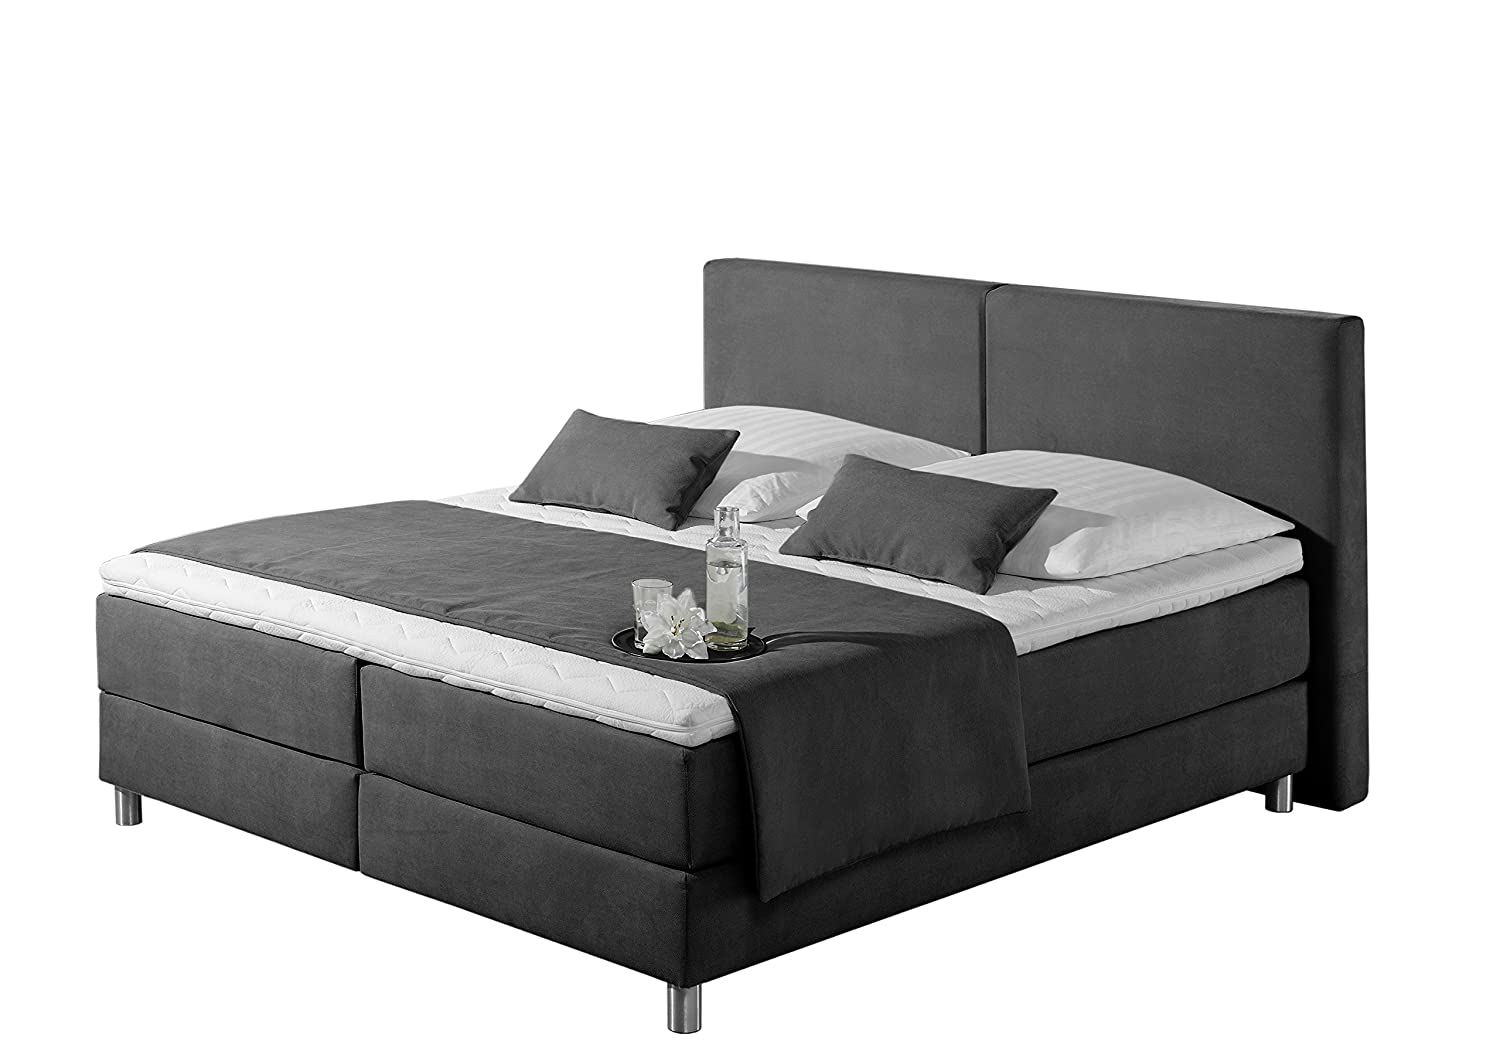 Maintal Betten 237396-4174 Boxspringbett Metropol 160 x 200 cm, Strukturstoff anthrazit